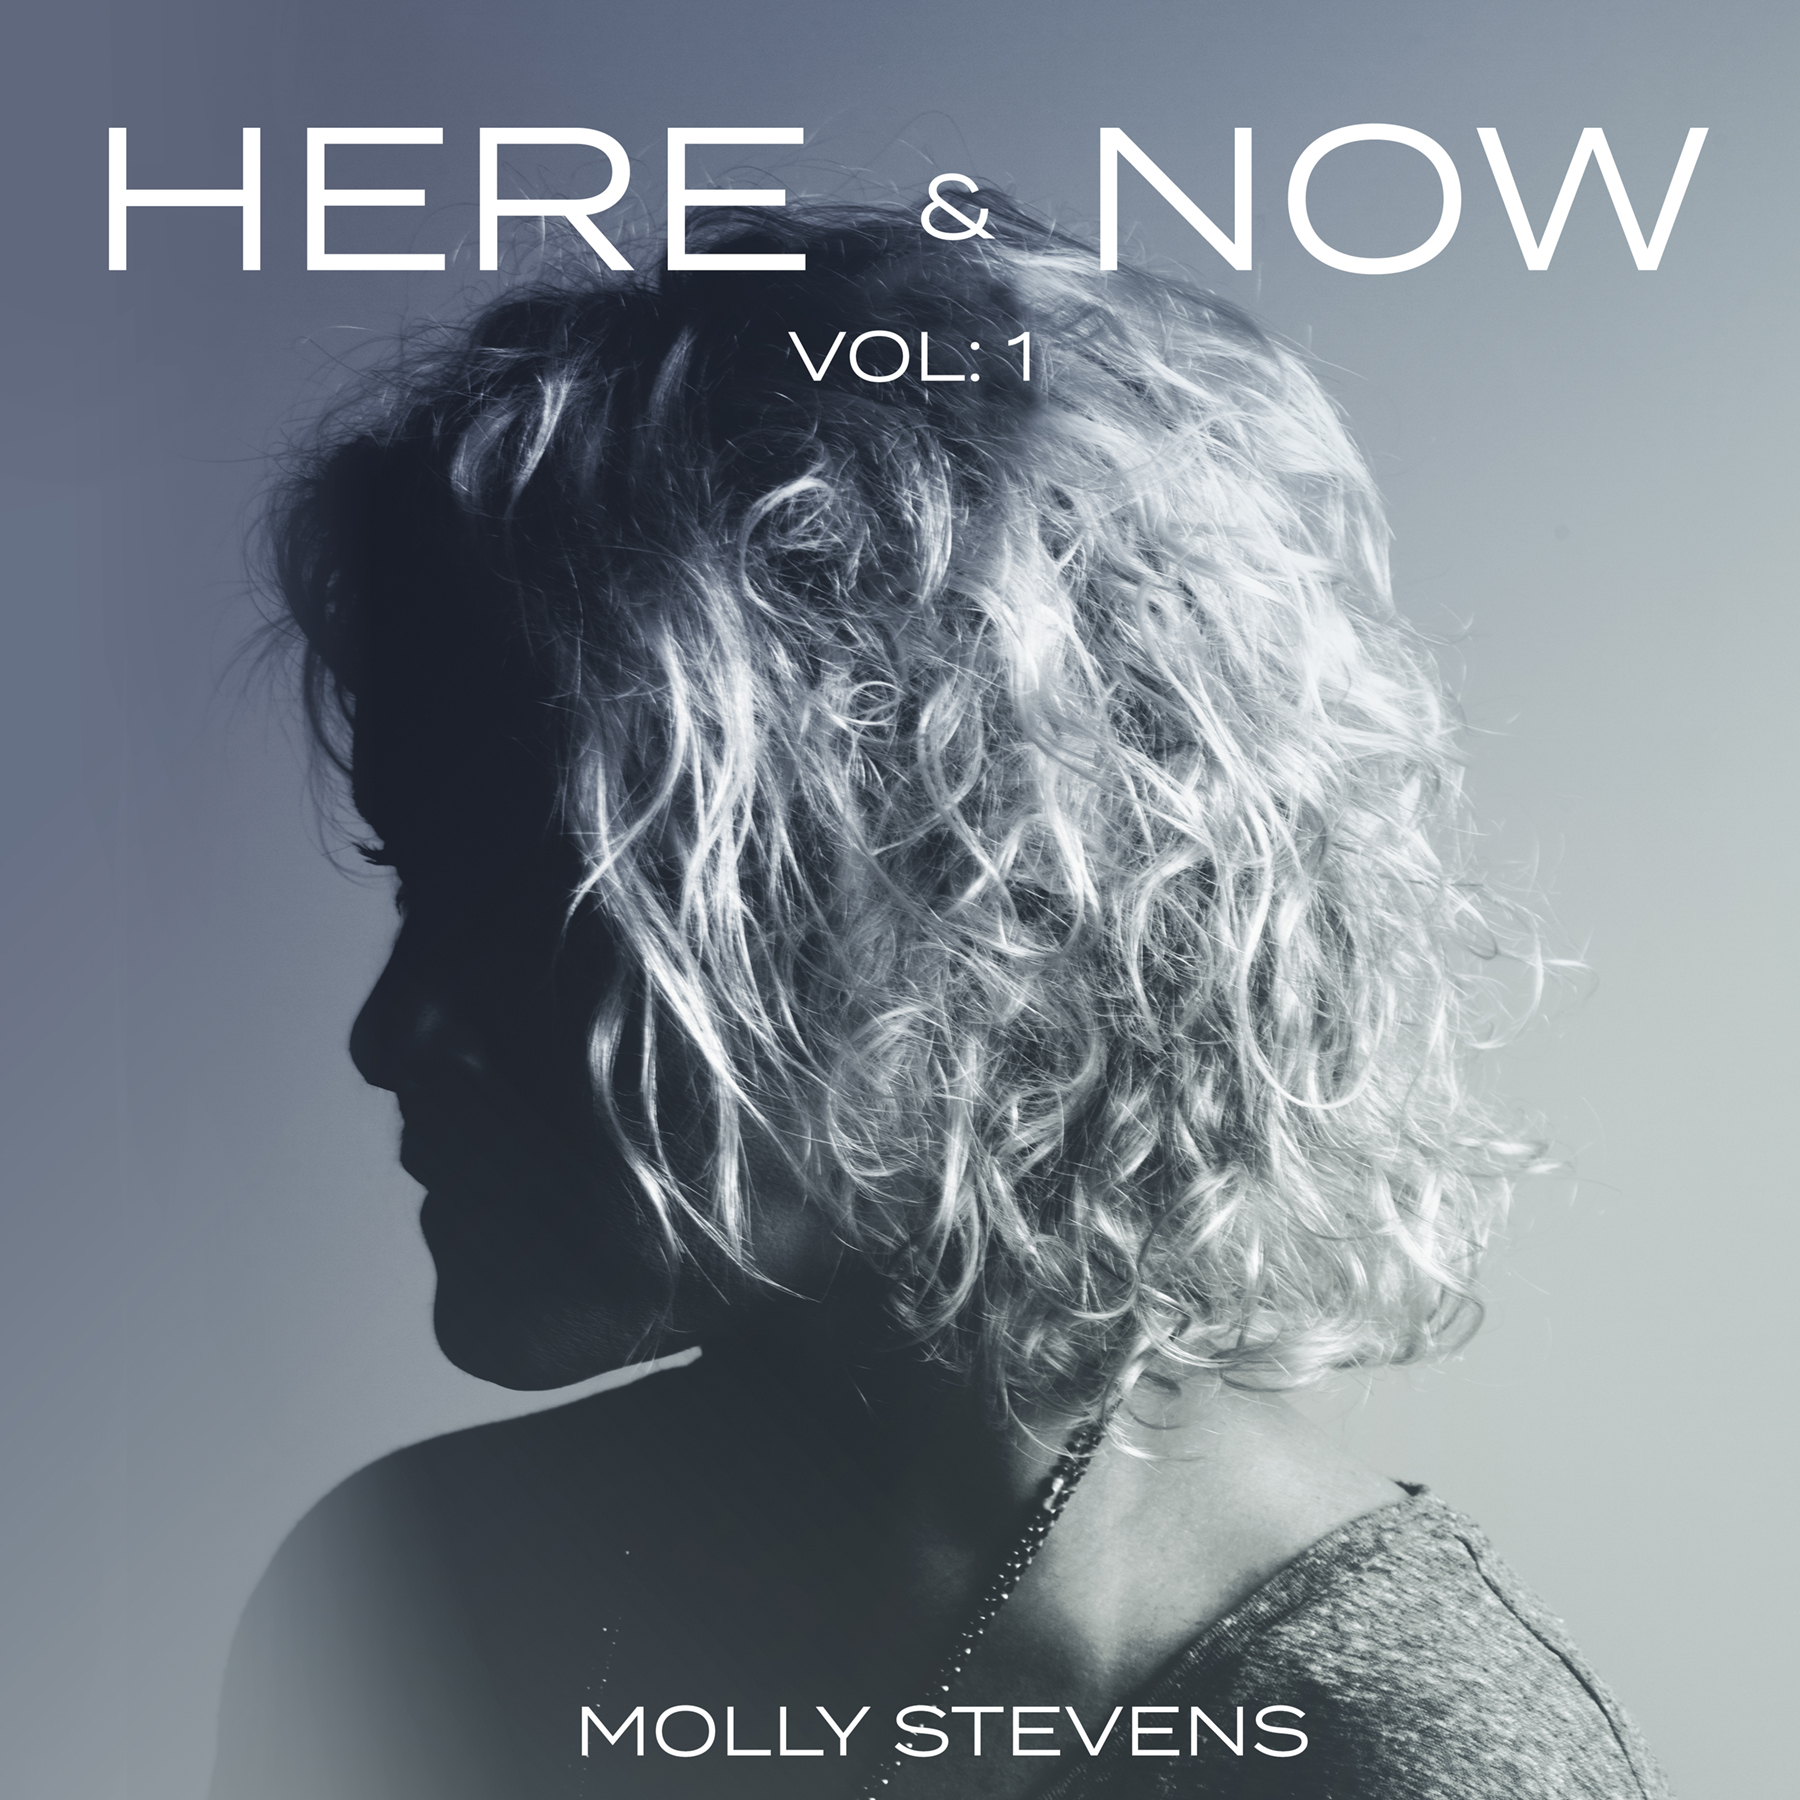 Molly Stevens - here and now ep art websized.jpg